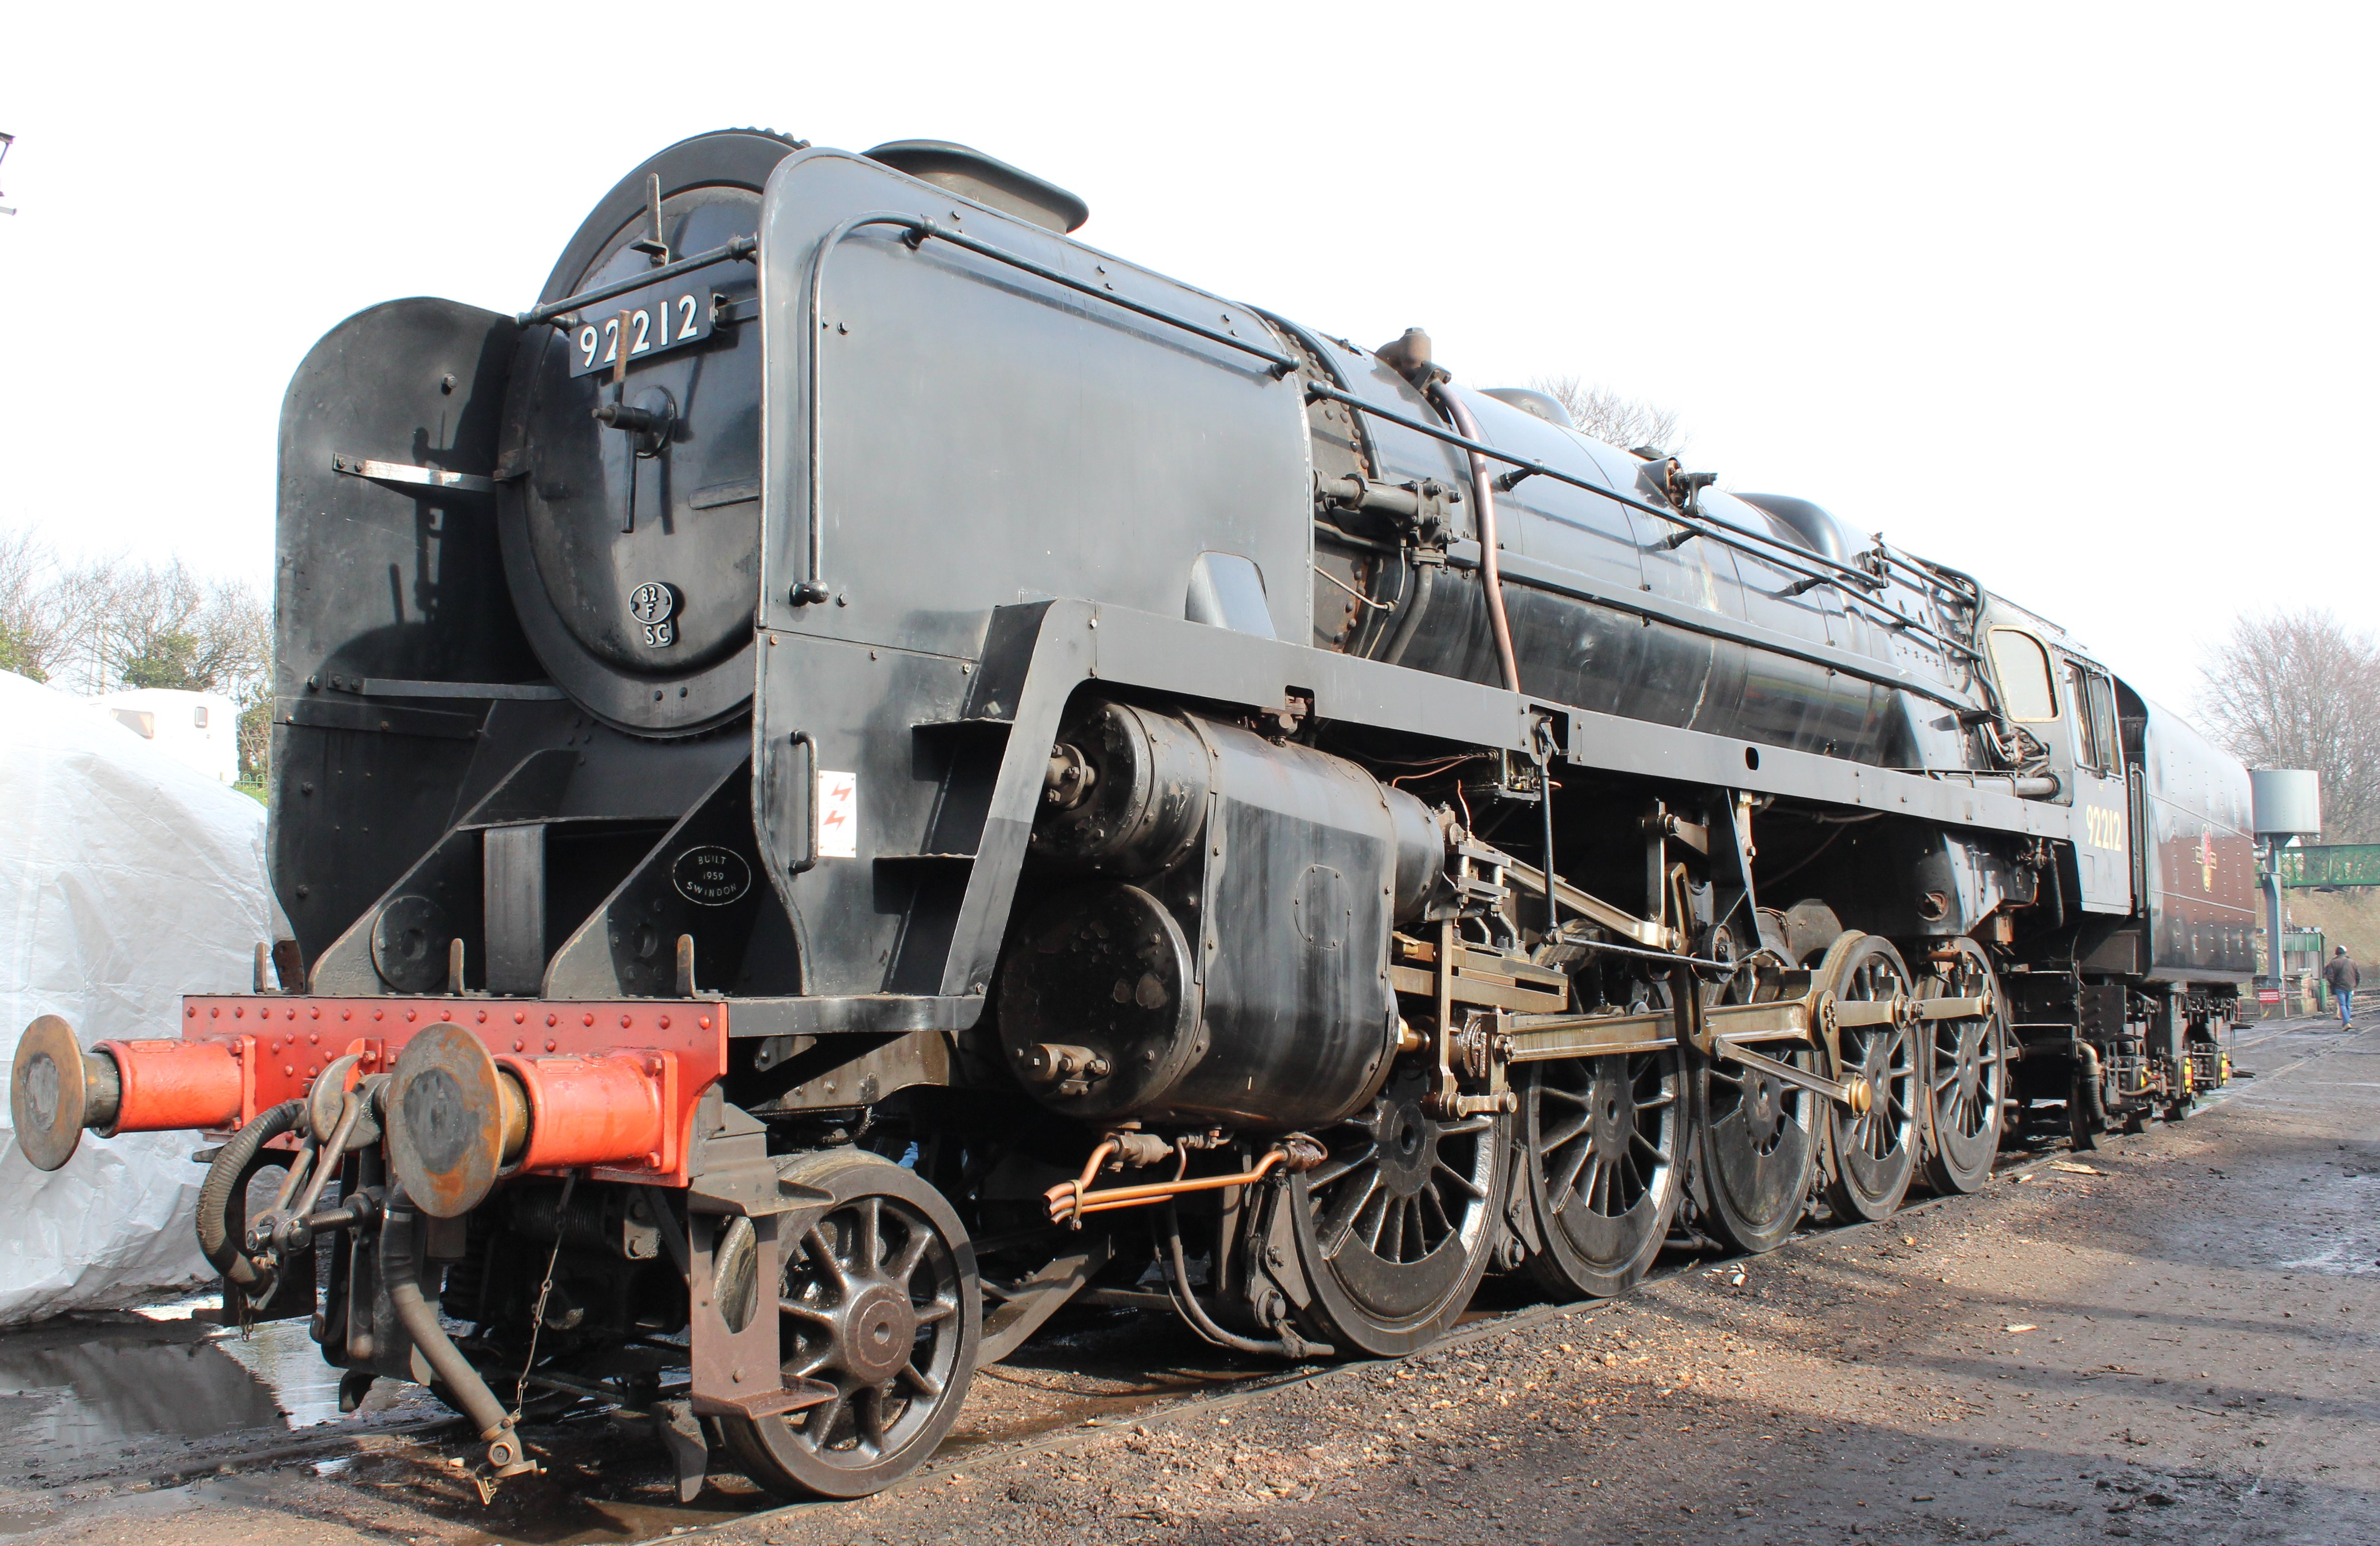 Stars of the Mid-Hants Spring Steam Gala 2014 Part 7